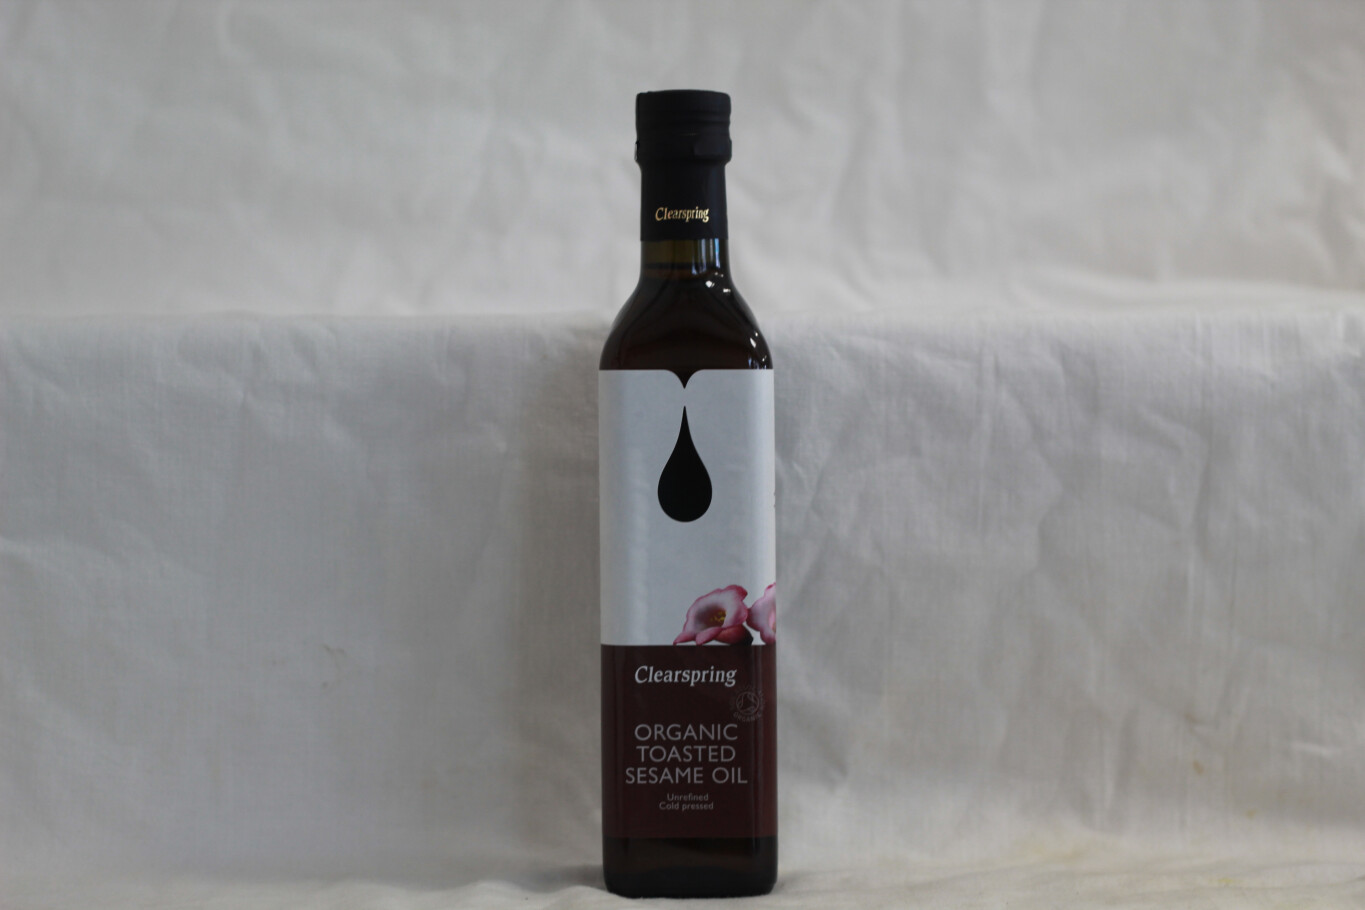 Clearspring Organic Toasted Sesame Oil 500ml